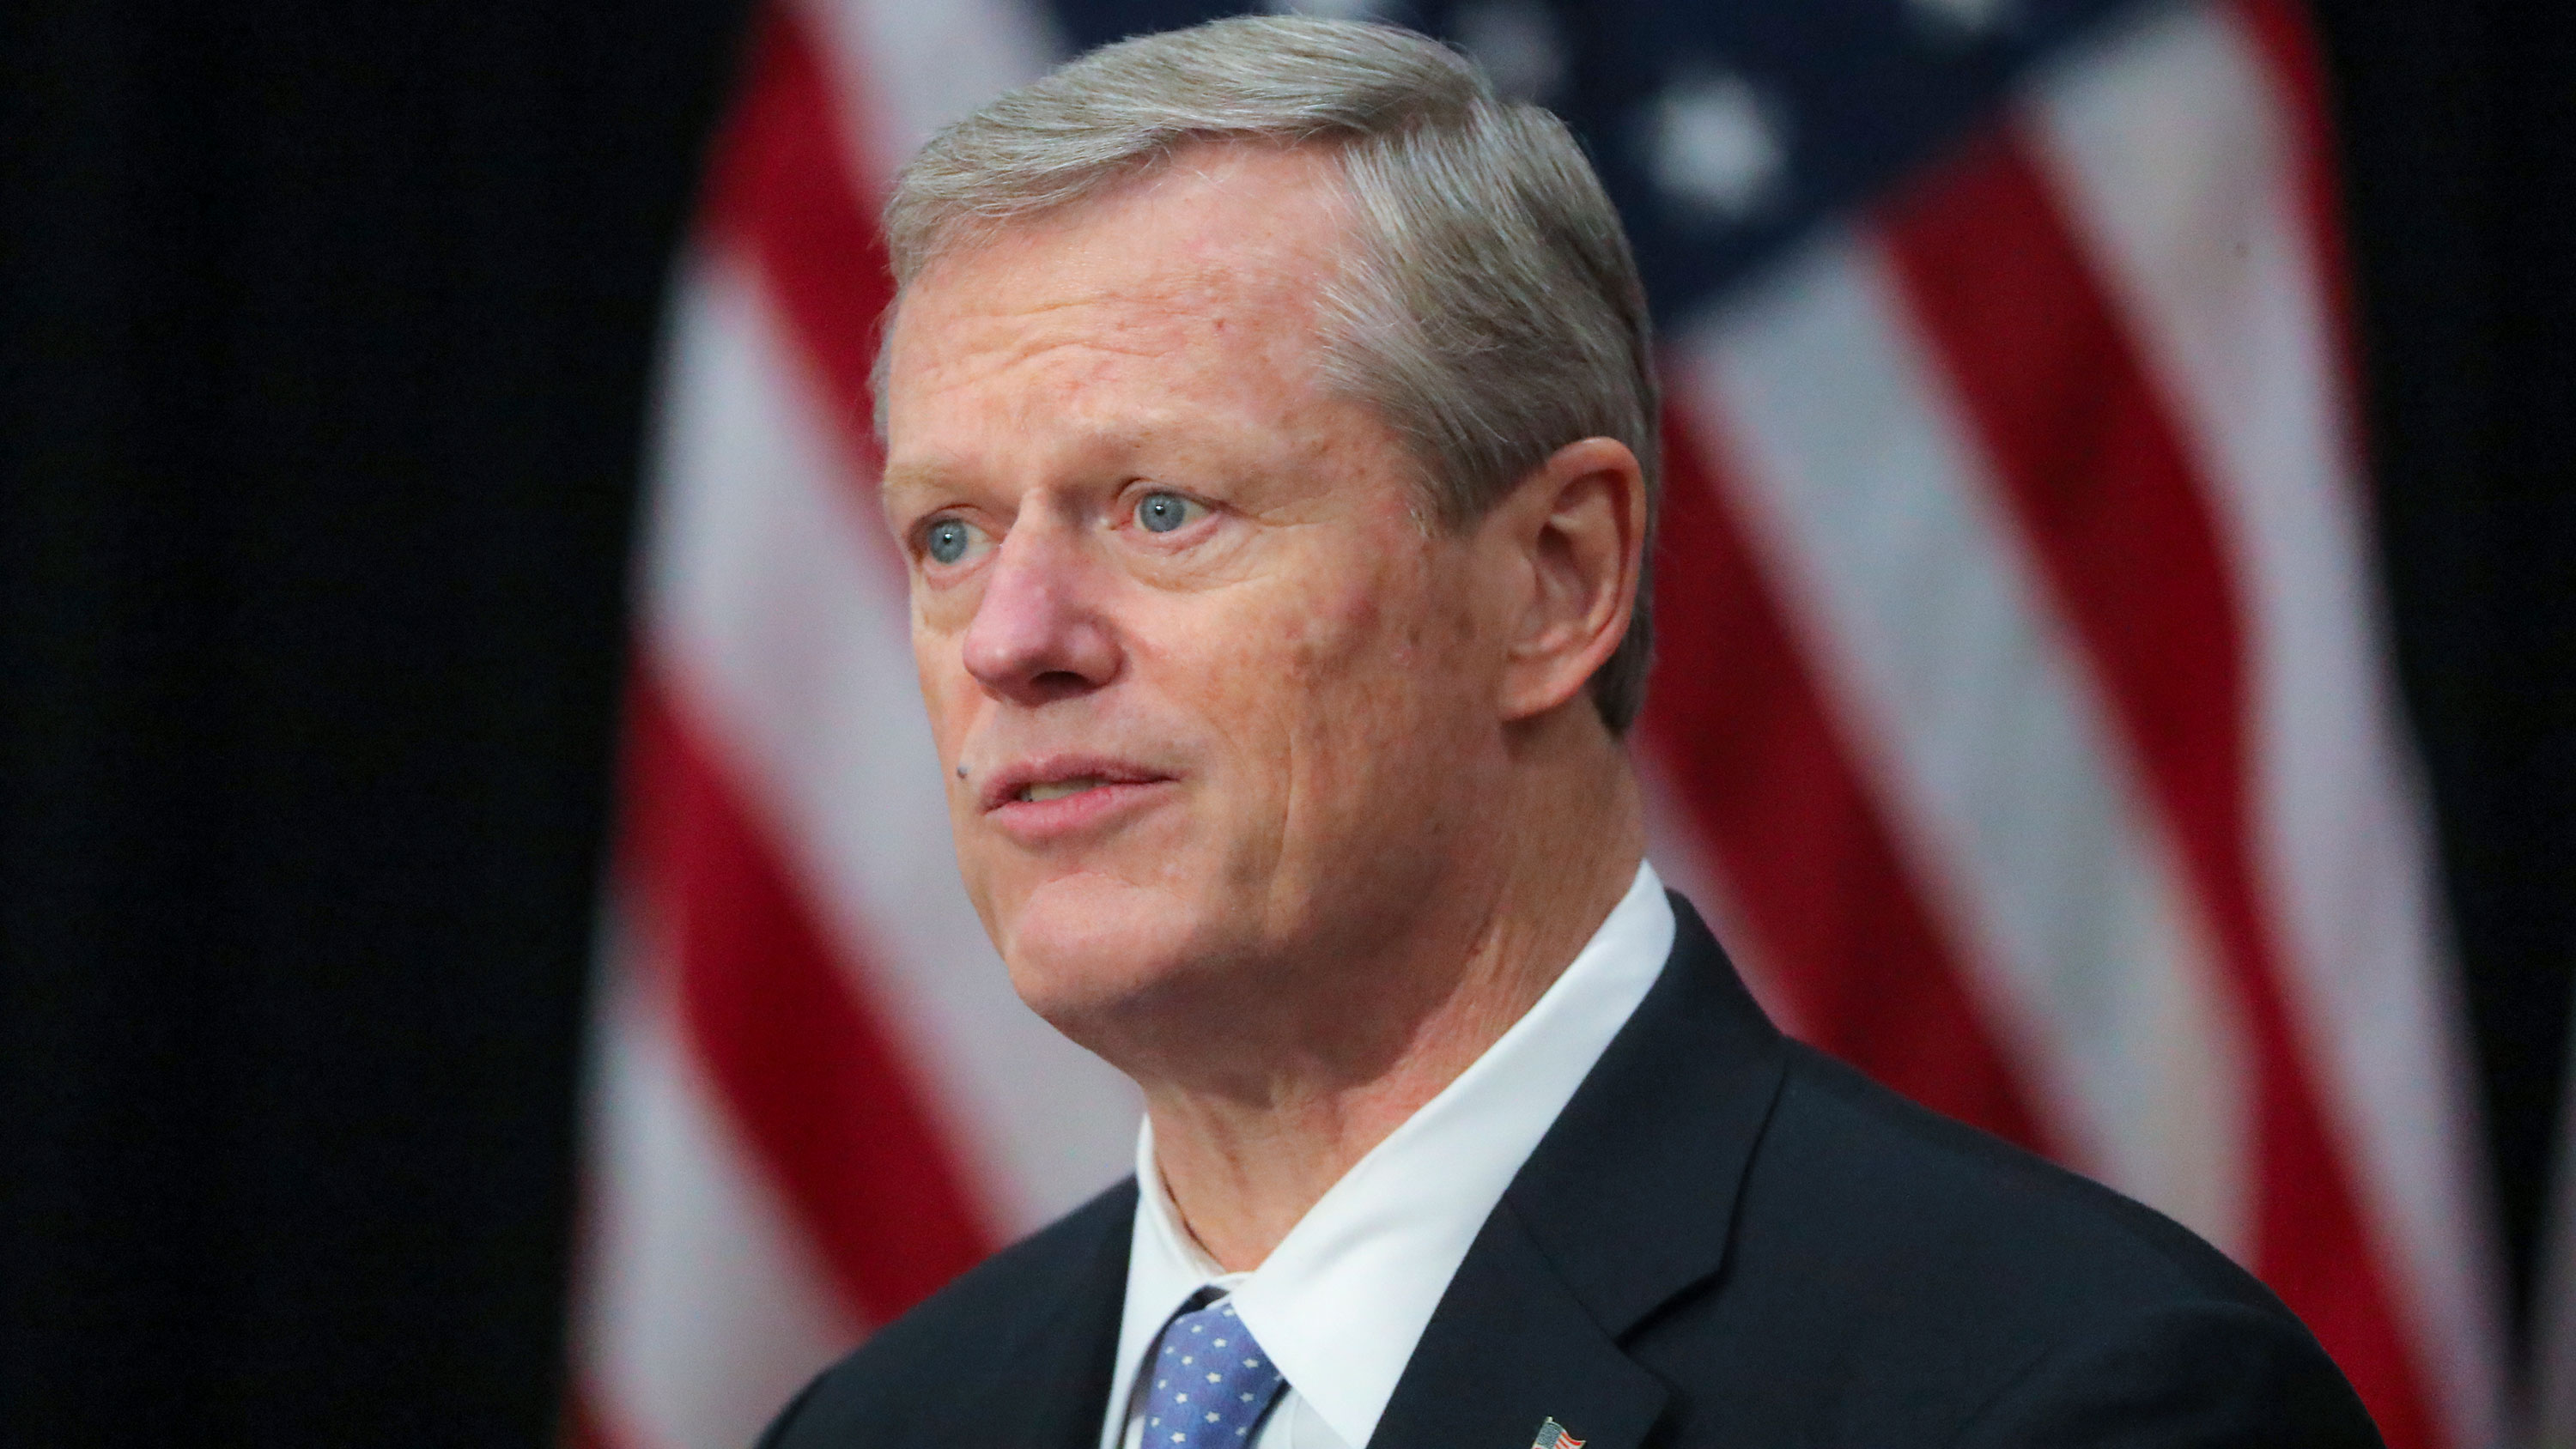 Gov. Charlie Baker speaks during a press conference on November 3 in Boston, Massachusetts.